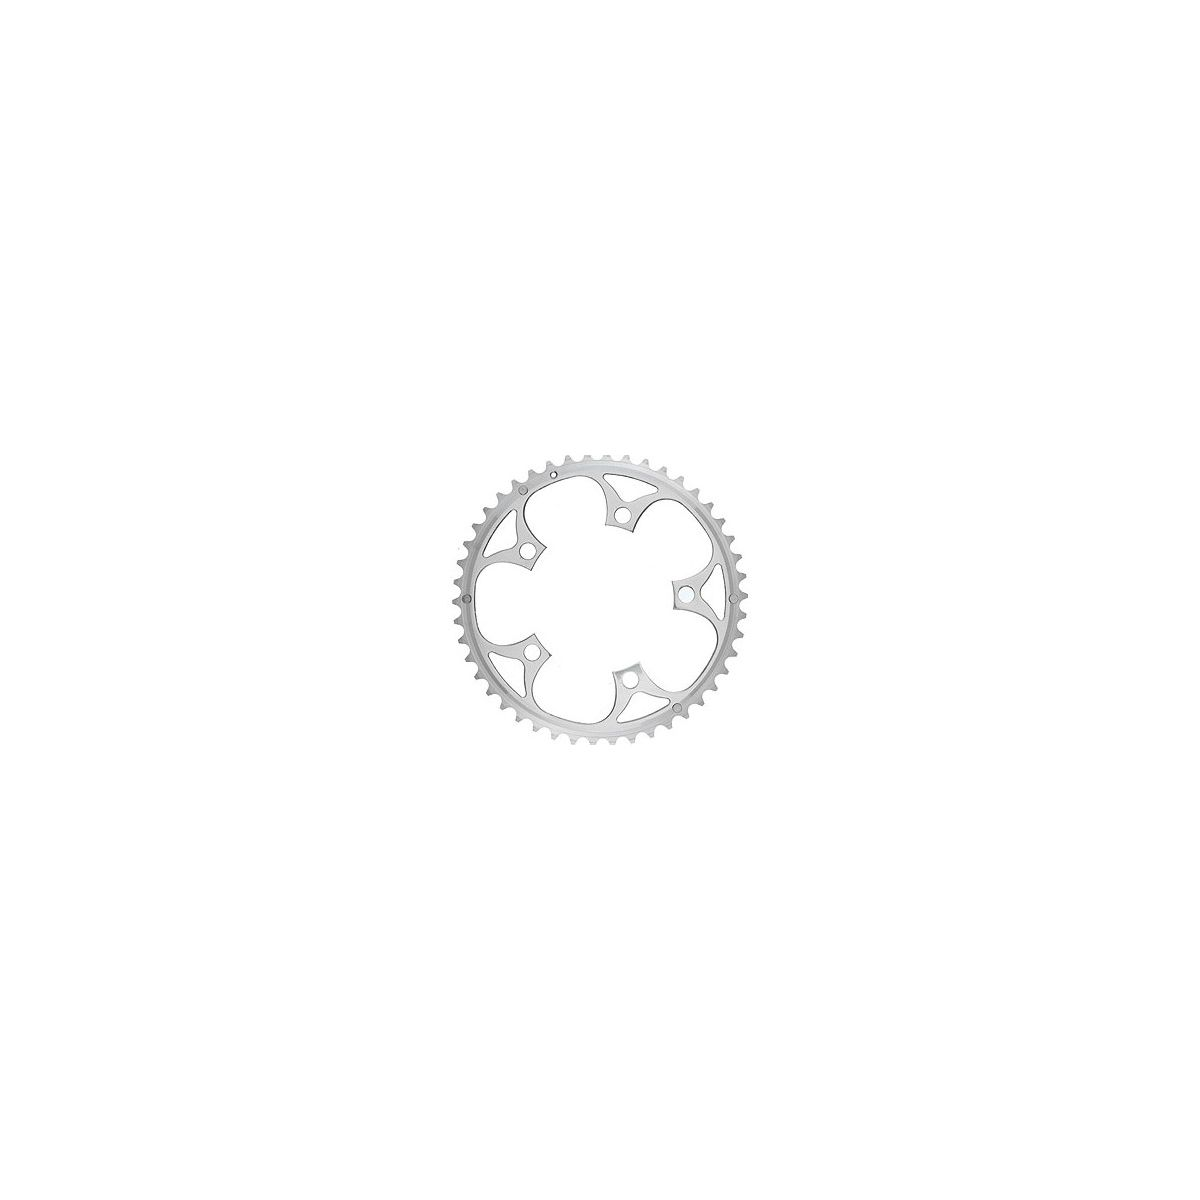 TA Zephyr 8-/9-/10-speed 46-tooth chainring | Klinger